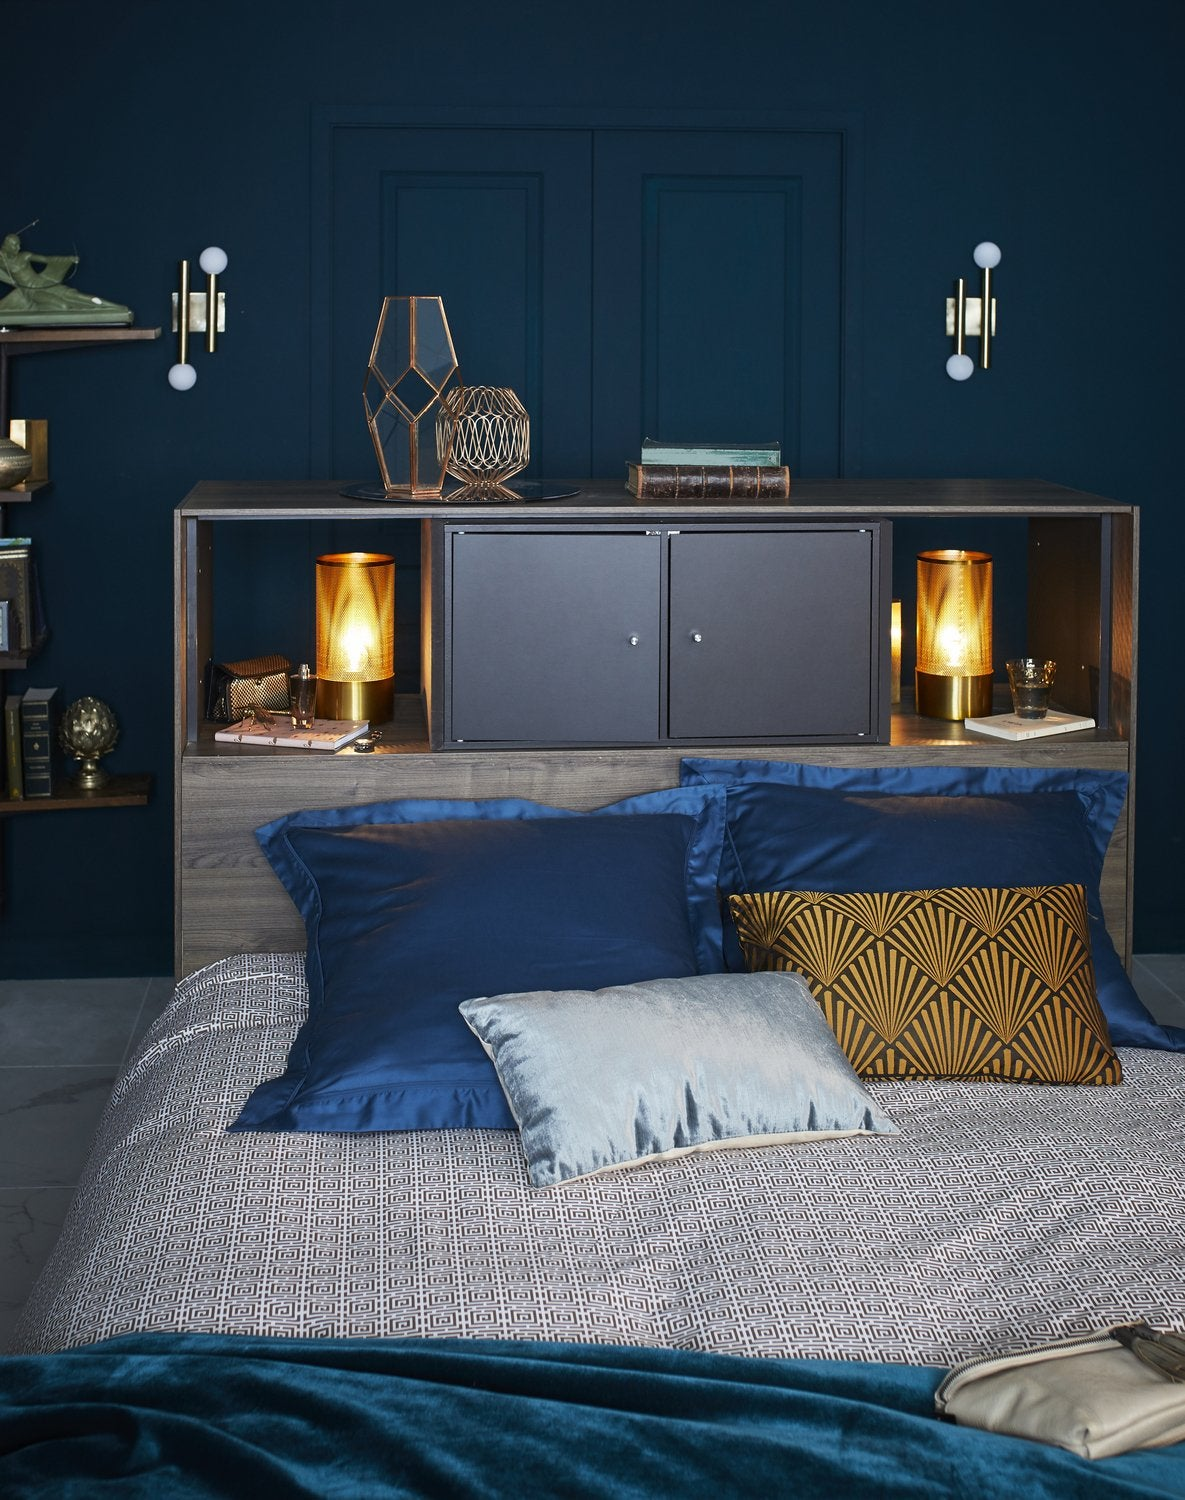 une chambre adulte aux teintes de bleu et au style. Black Bedroom Furniture Sets. Home Design Ideas